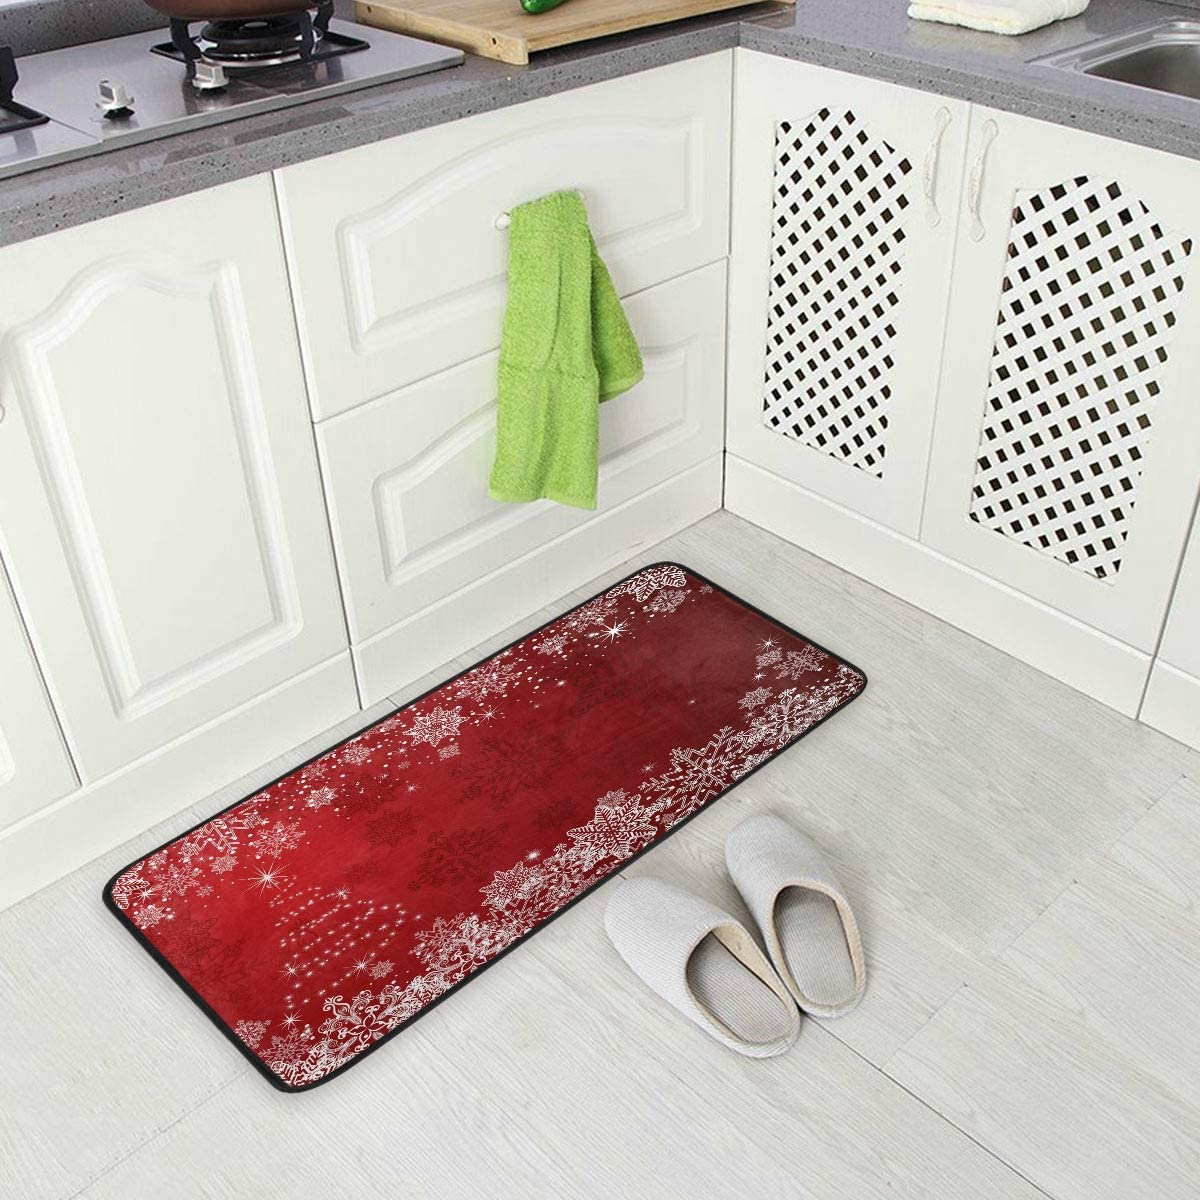 Kitchen Rugs Agona Anti Fatigue Kitchen Mat Christmas Tree Winter White Snowflakes Red Kitchen Floor Mat Soft Standing Mats Absorbent Area Rugs Non Slip Kitchen Rugs Bath Rug Runner Carpet For Home